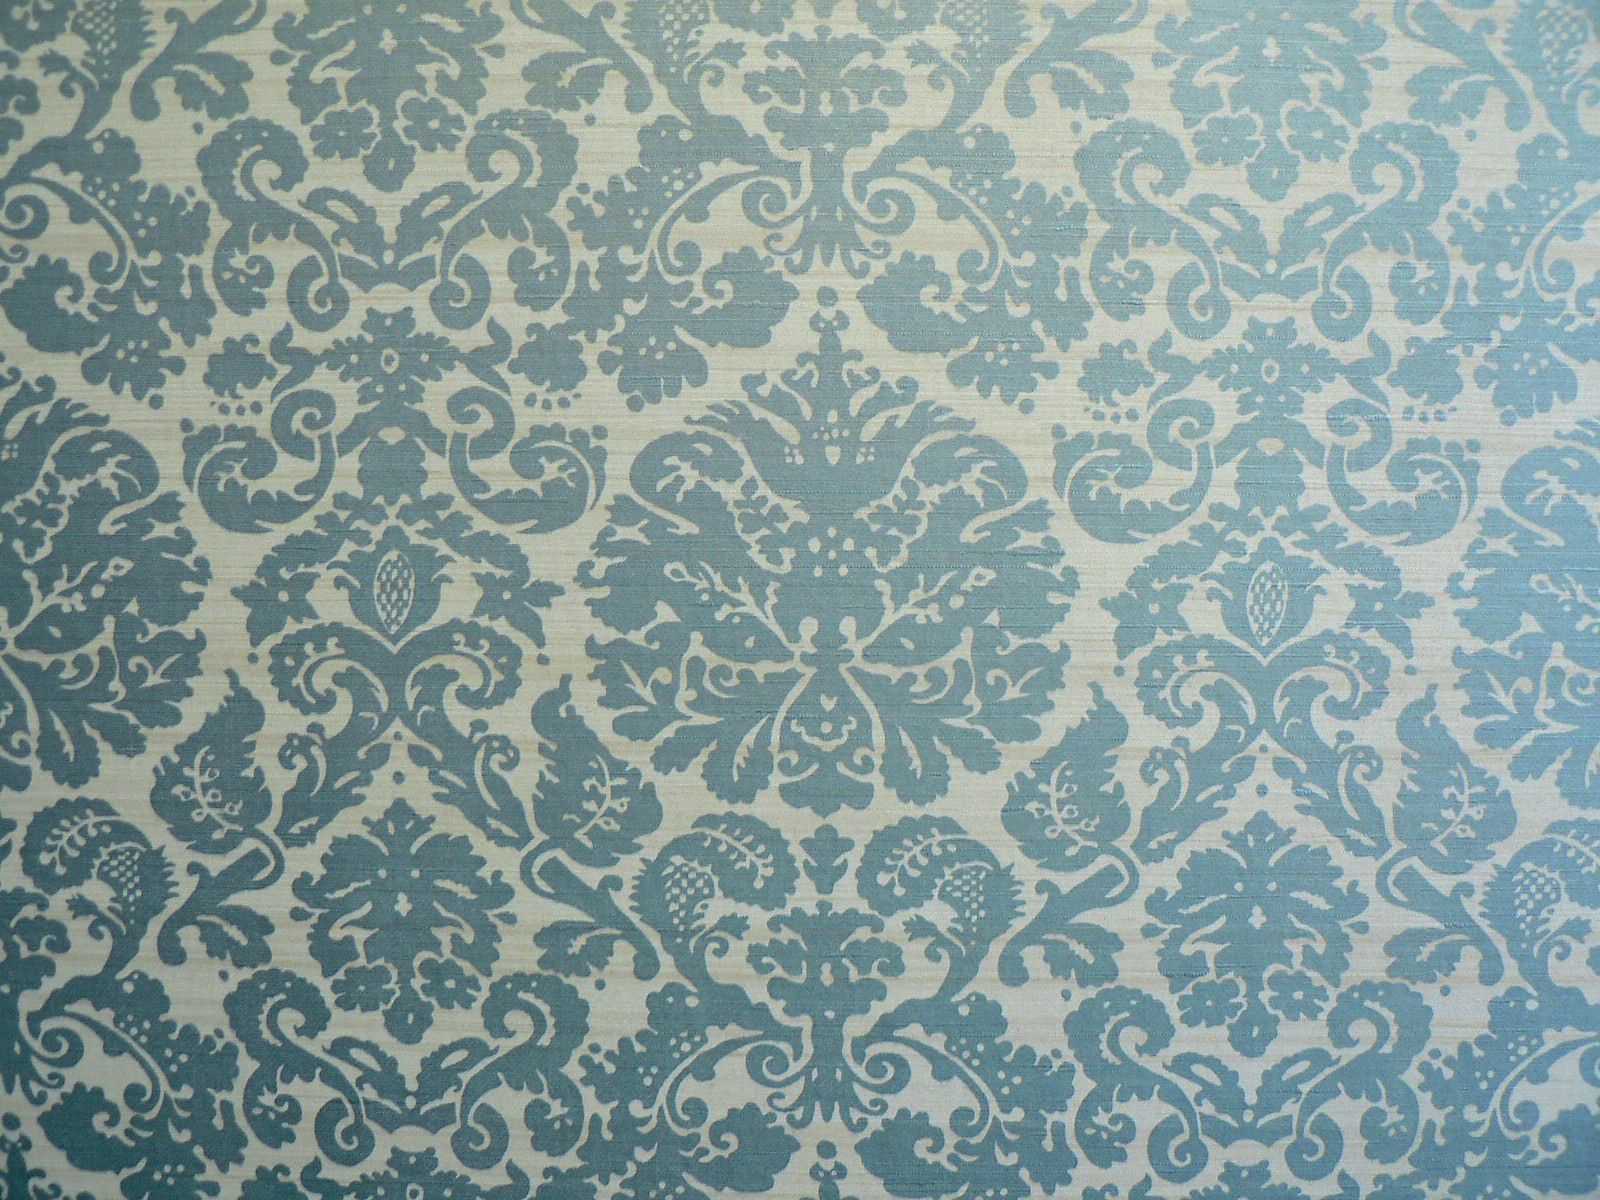 Patterns For Wallpaper